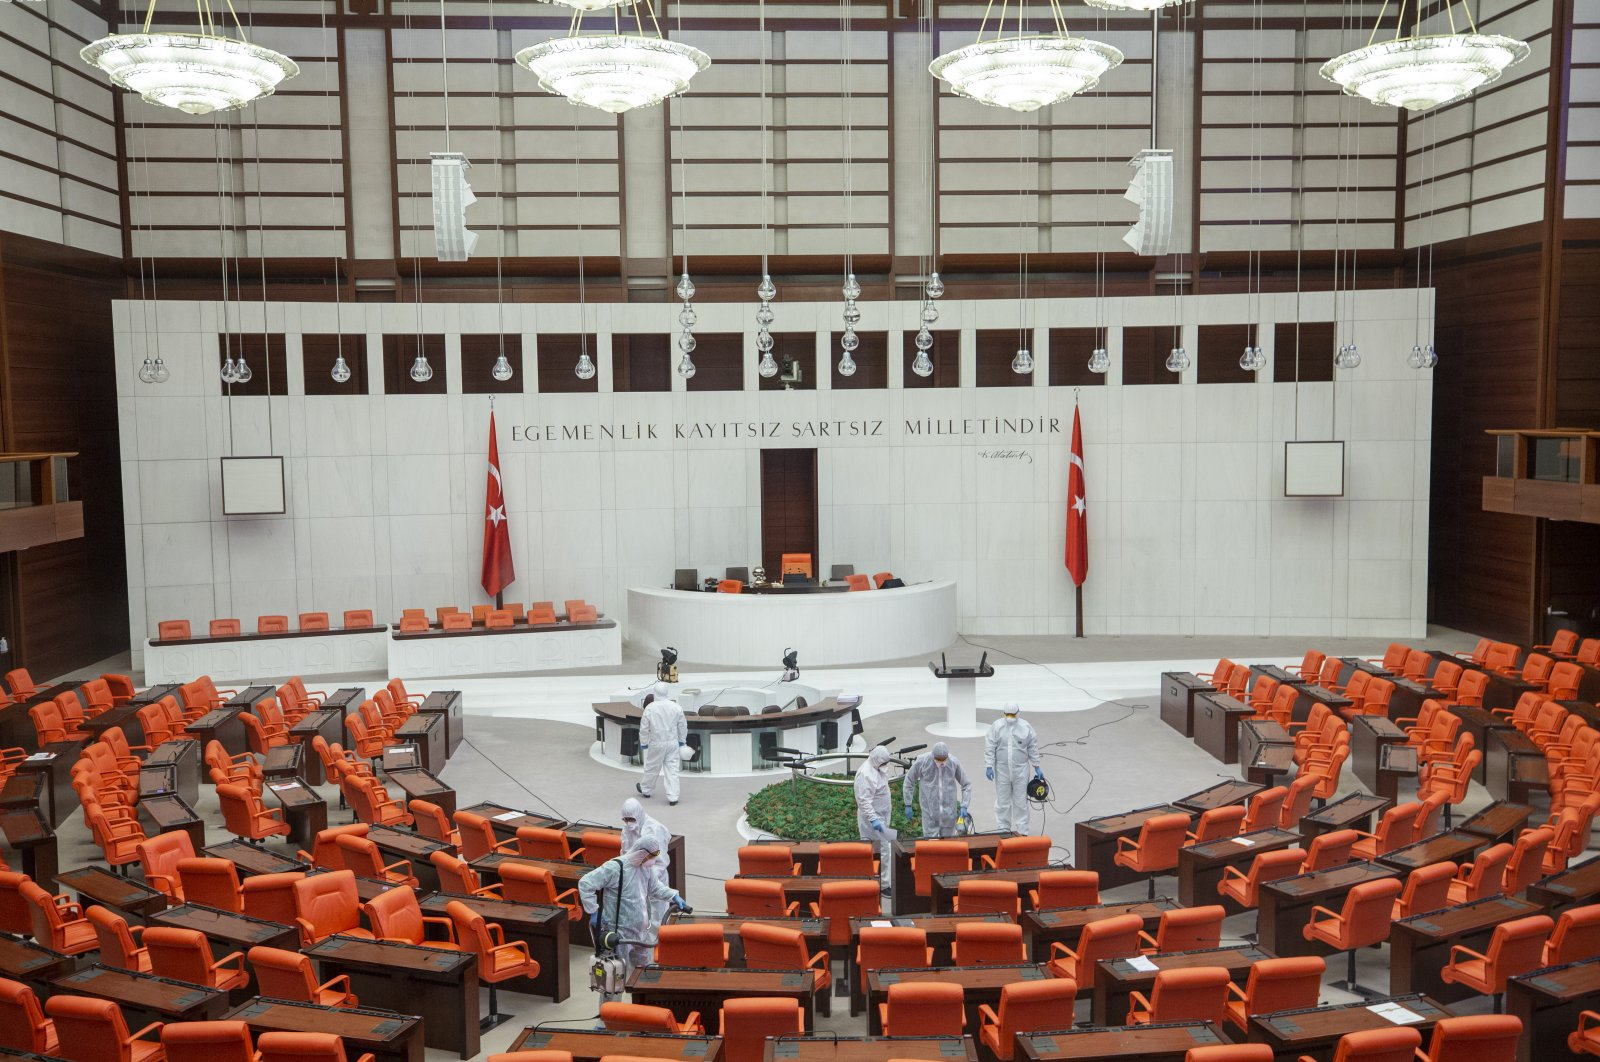 Turkey's Parliament has been disinfected within the scope of measures taken against the spread of COVID-19, March 13, 2020. (AA Photo)